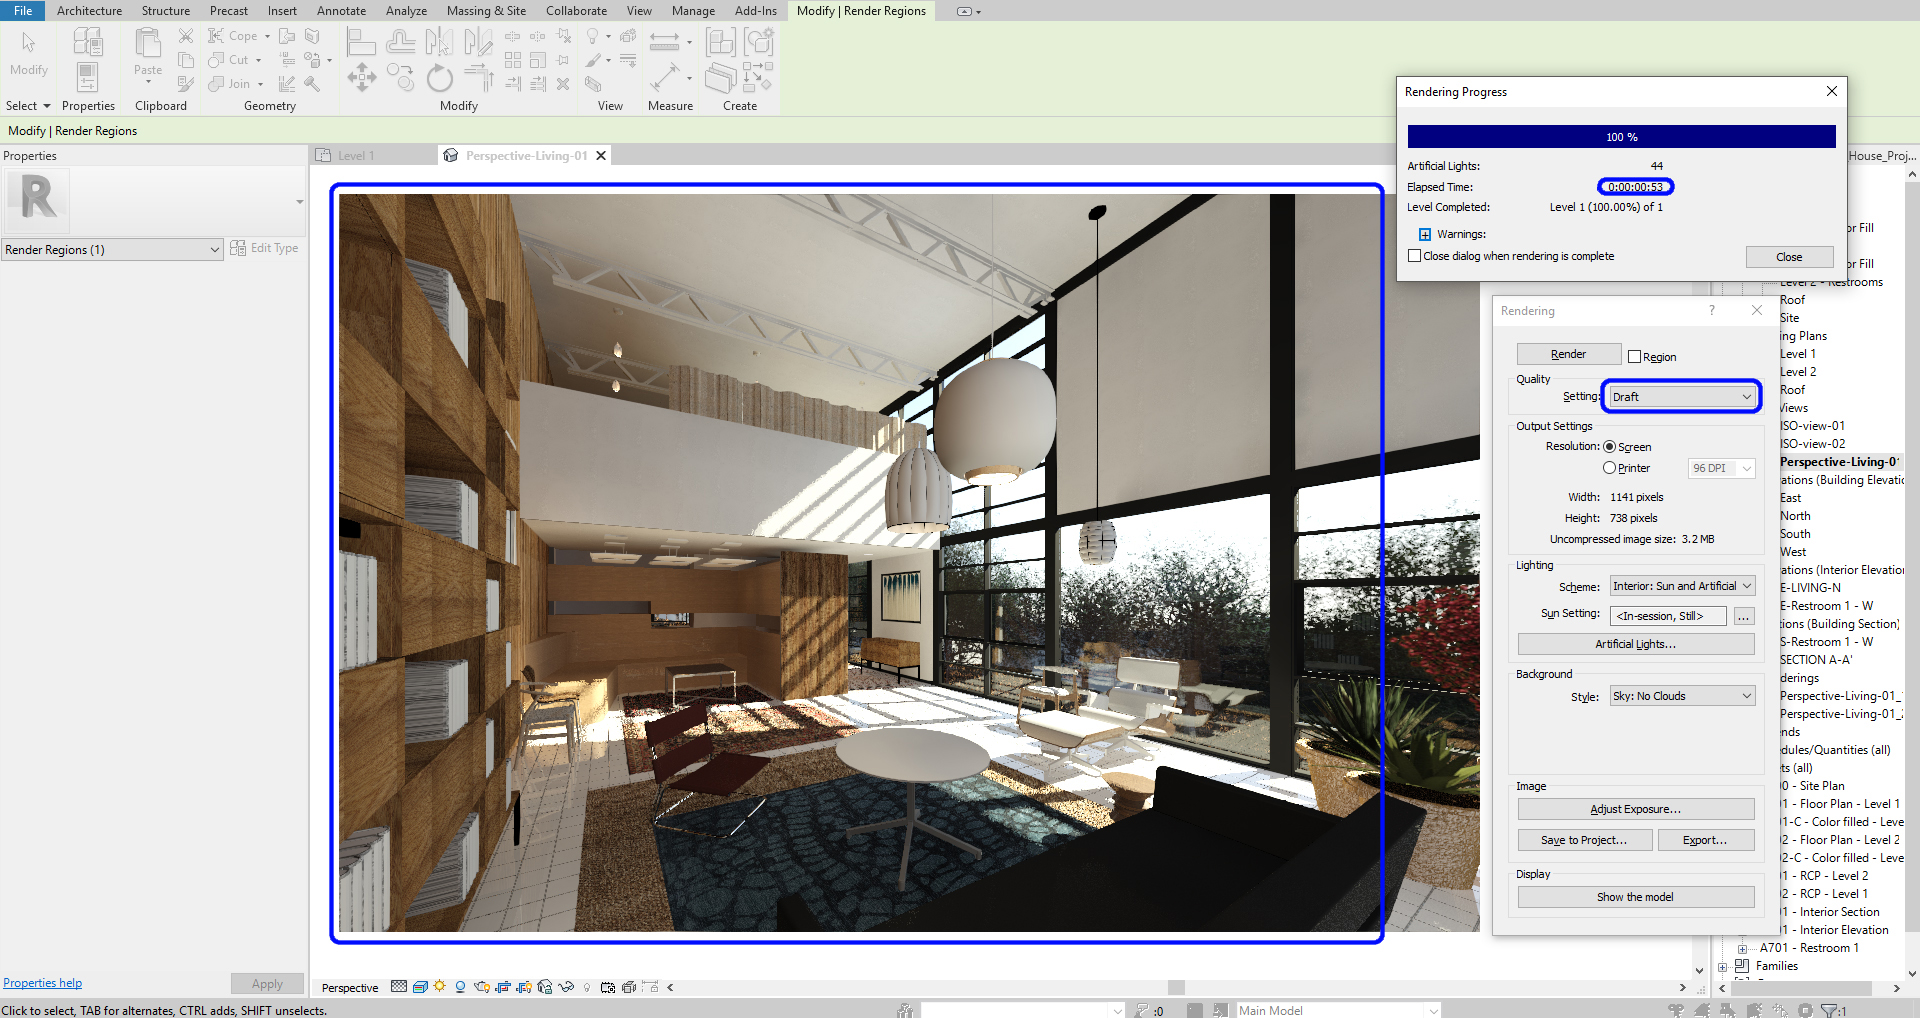 It presents the draft render quality.